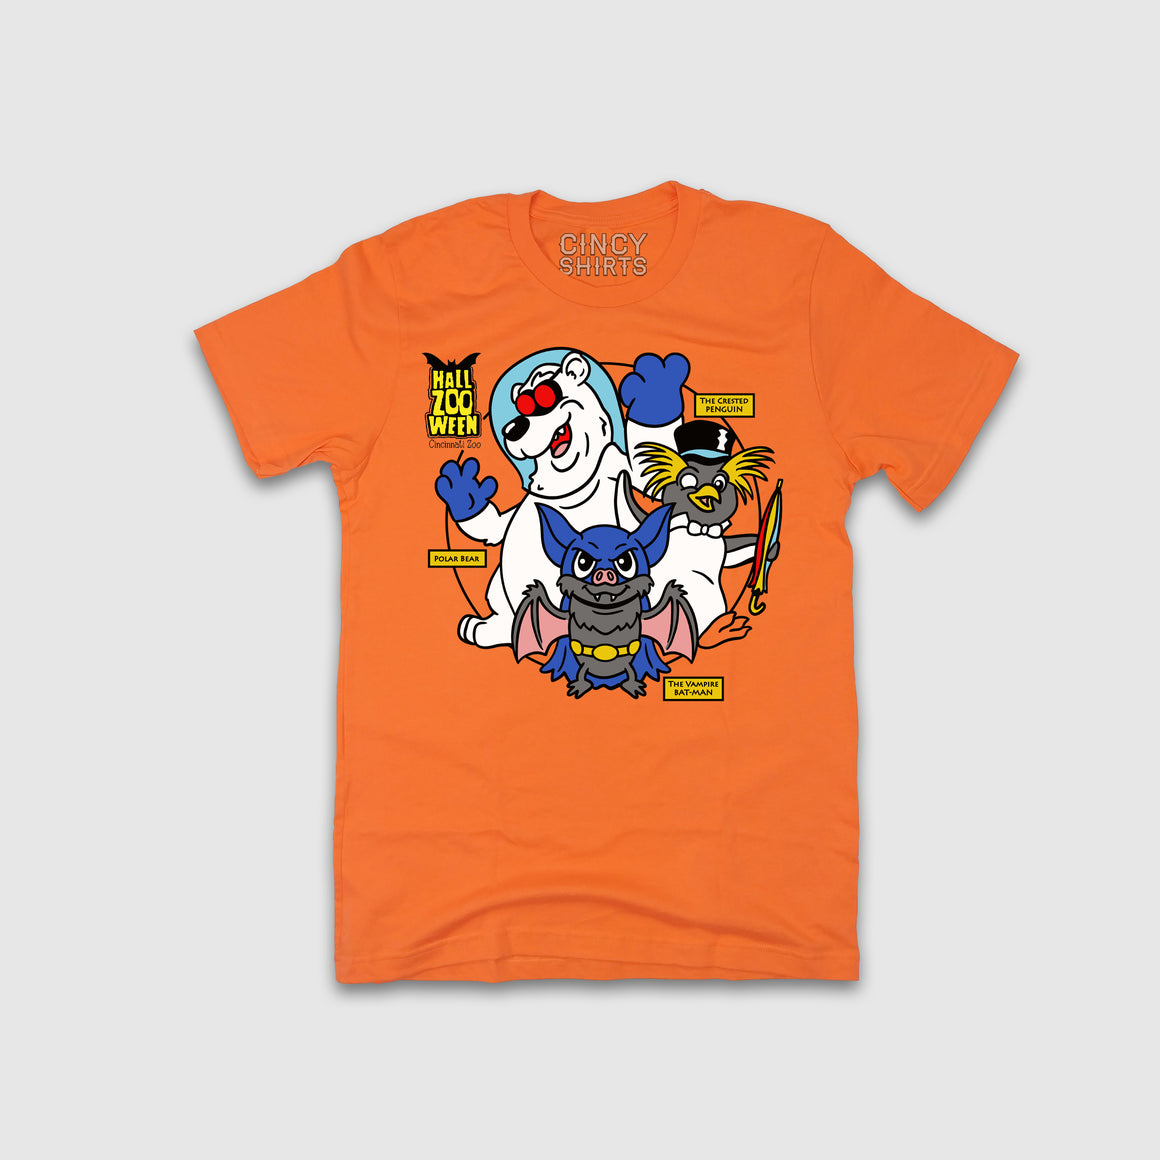 HallZOOween Action Heroes - Youth Sizes - Cincy Shirts